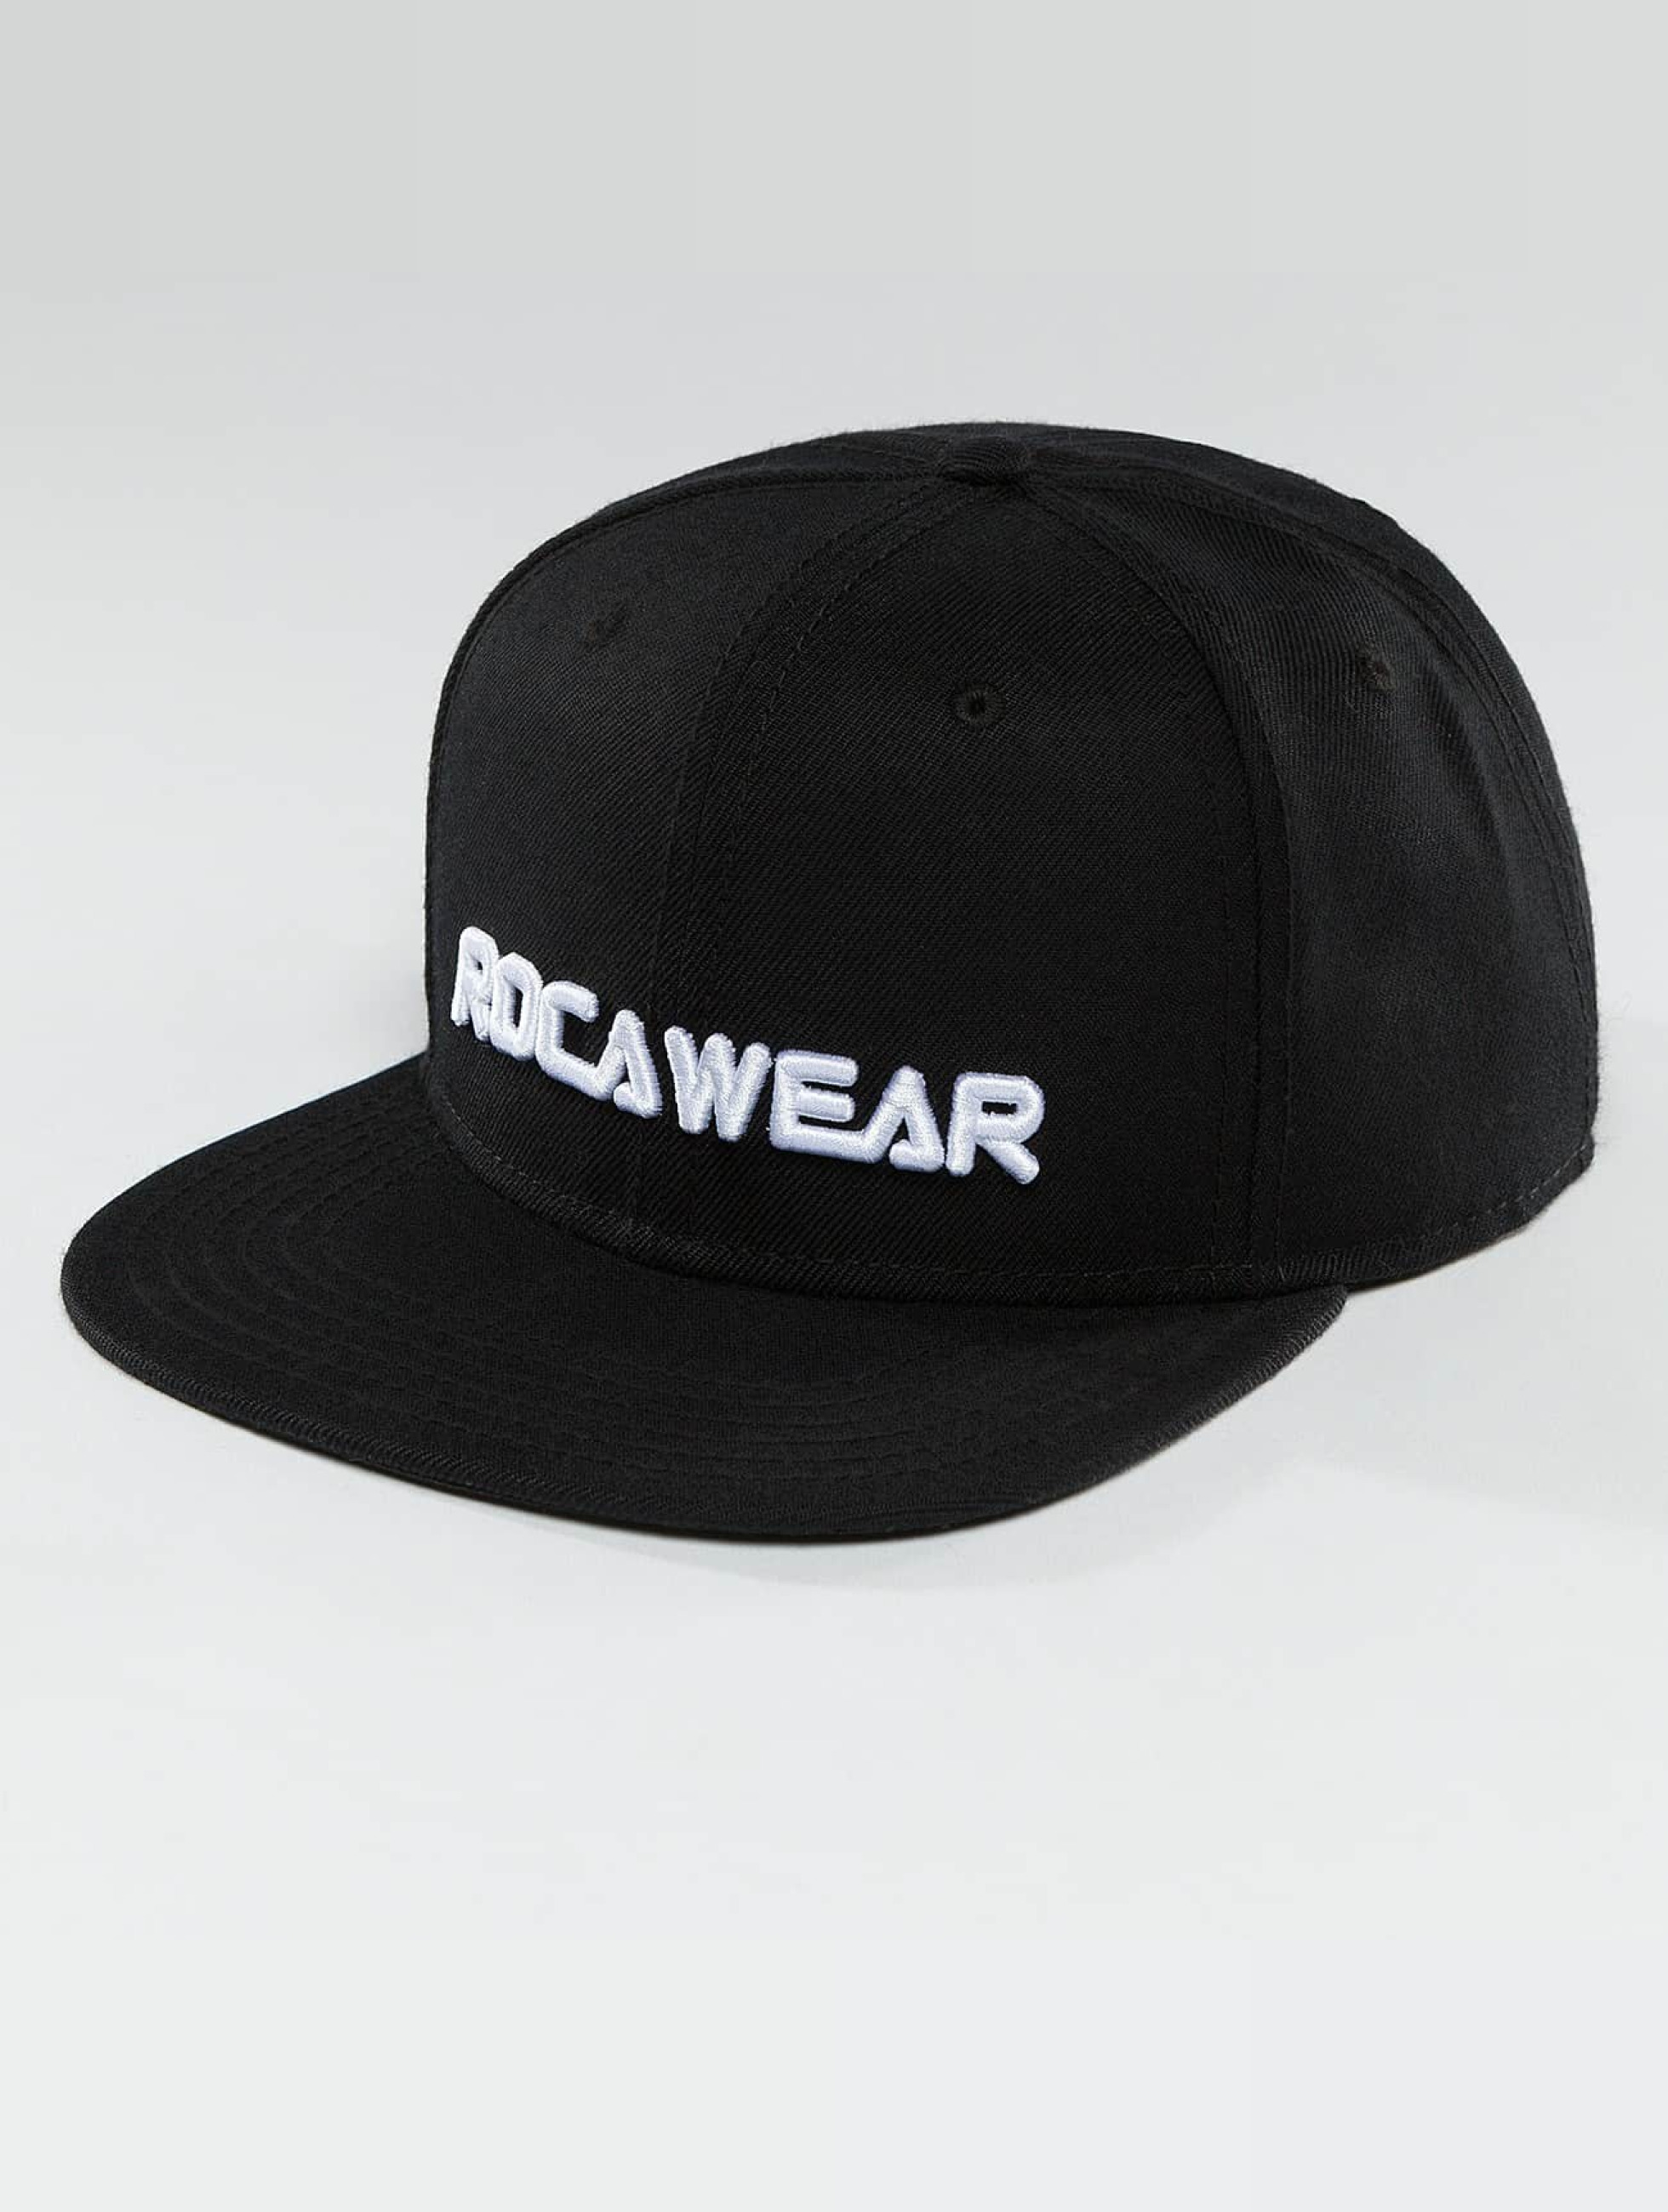 Rocawear / Snapback Cap BLNCTY in black One Size